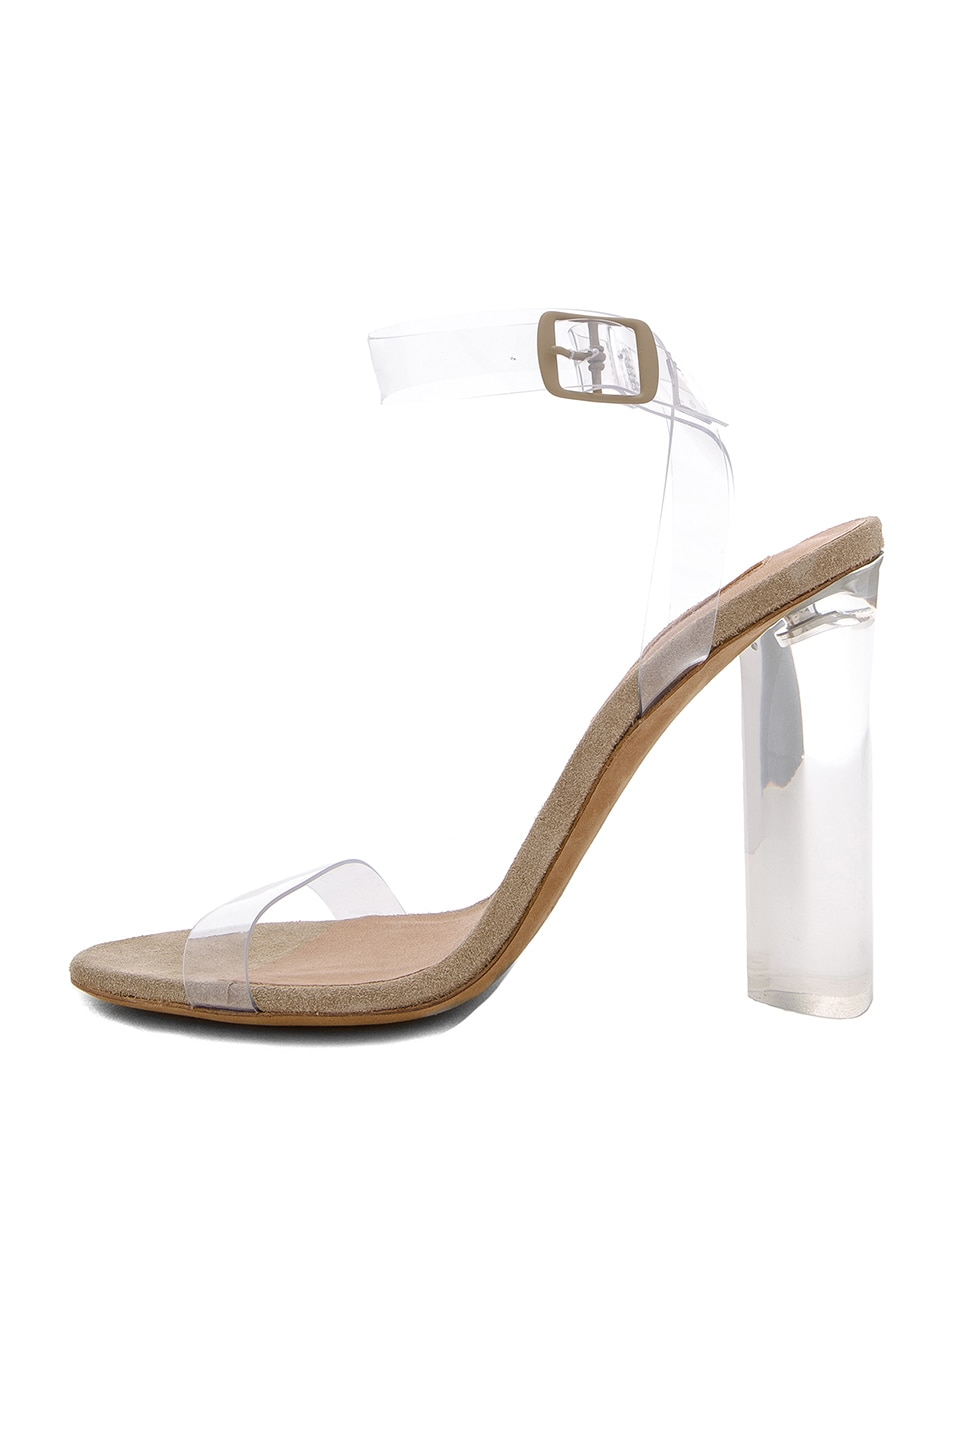 Image 5 of YEEZY Season 2 Heels in Lucite